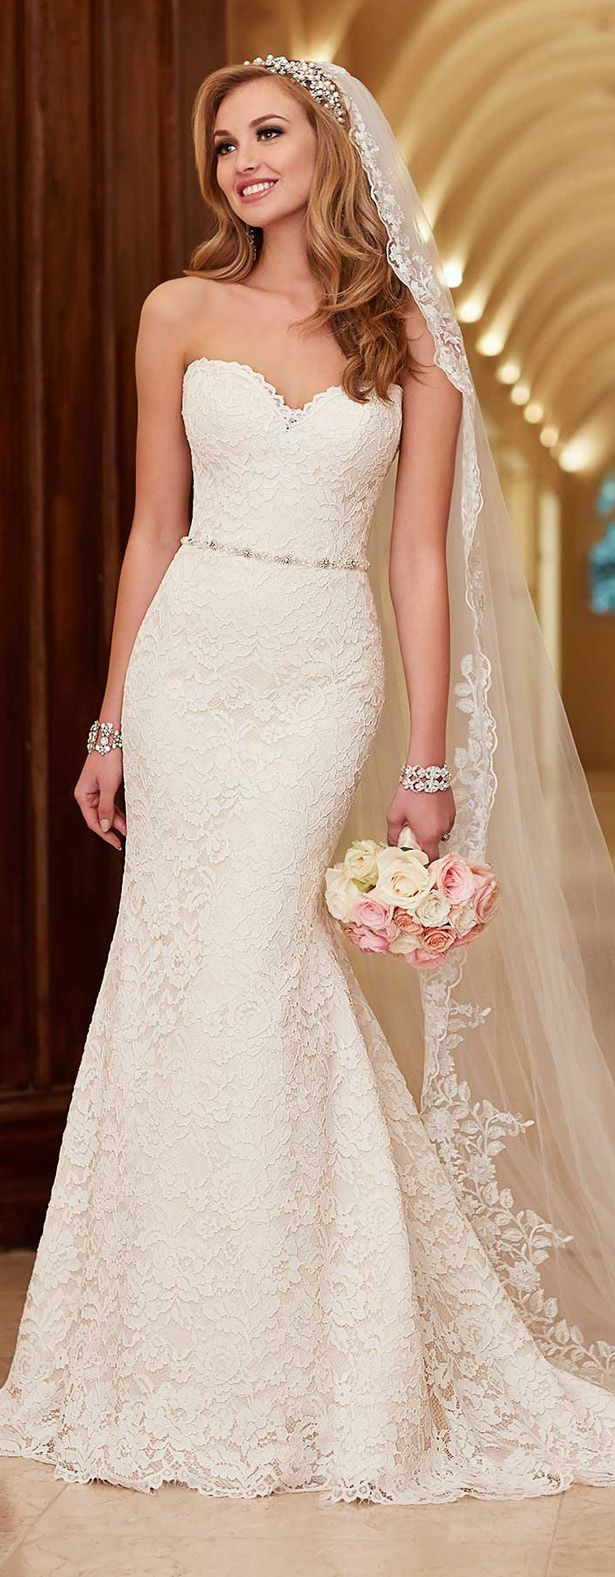 Stella York Spring 2016 Wedding Dresses Collection | http://www.tulleandchantilly.com/blog/stella-york-spring-2016-wedding-dresses-collection/ #vestido de novia | # trajes de novio | vestidos de novia para gorditas | vestidos de novia cortos http://amzn.to/29aGZWo